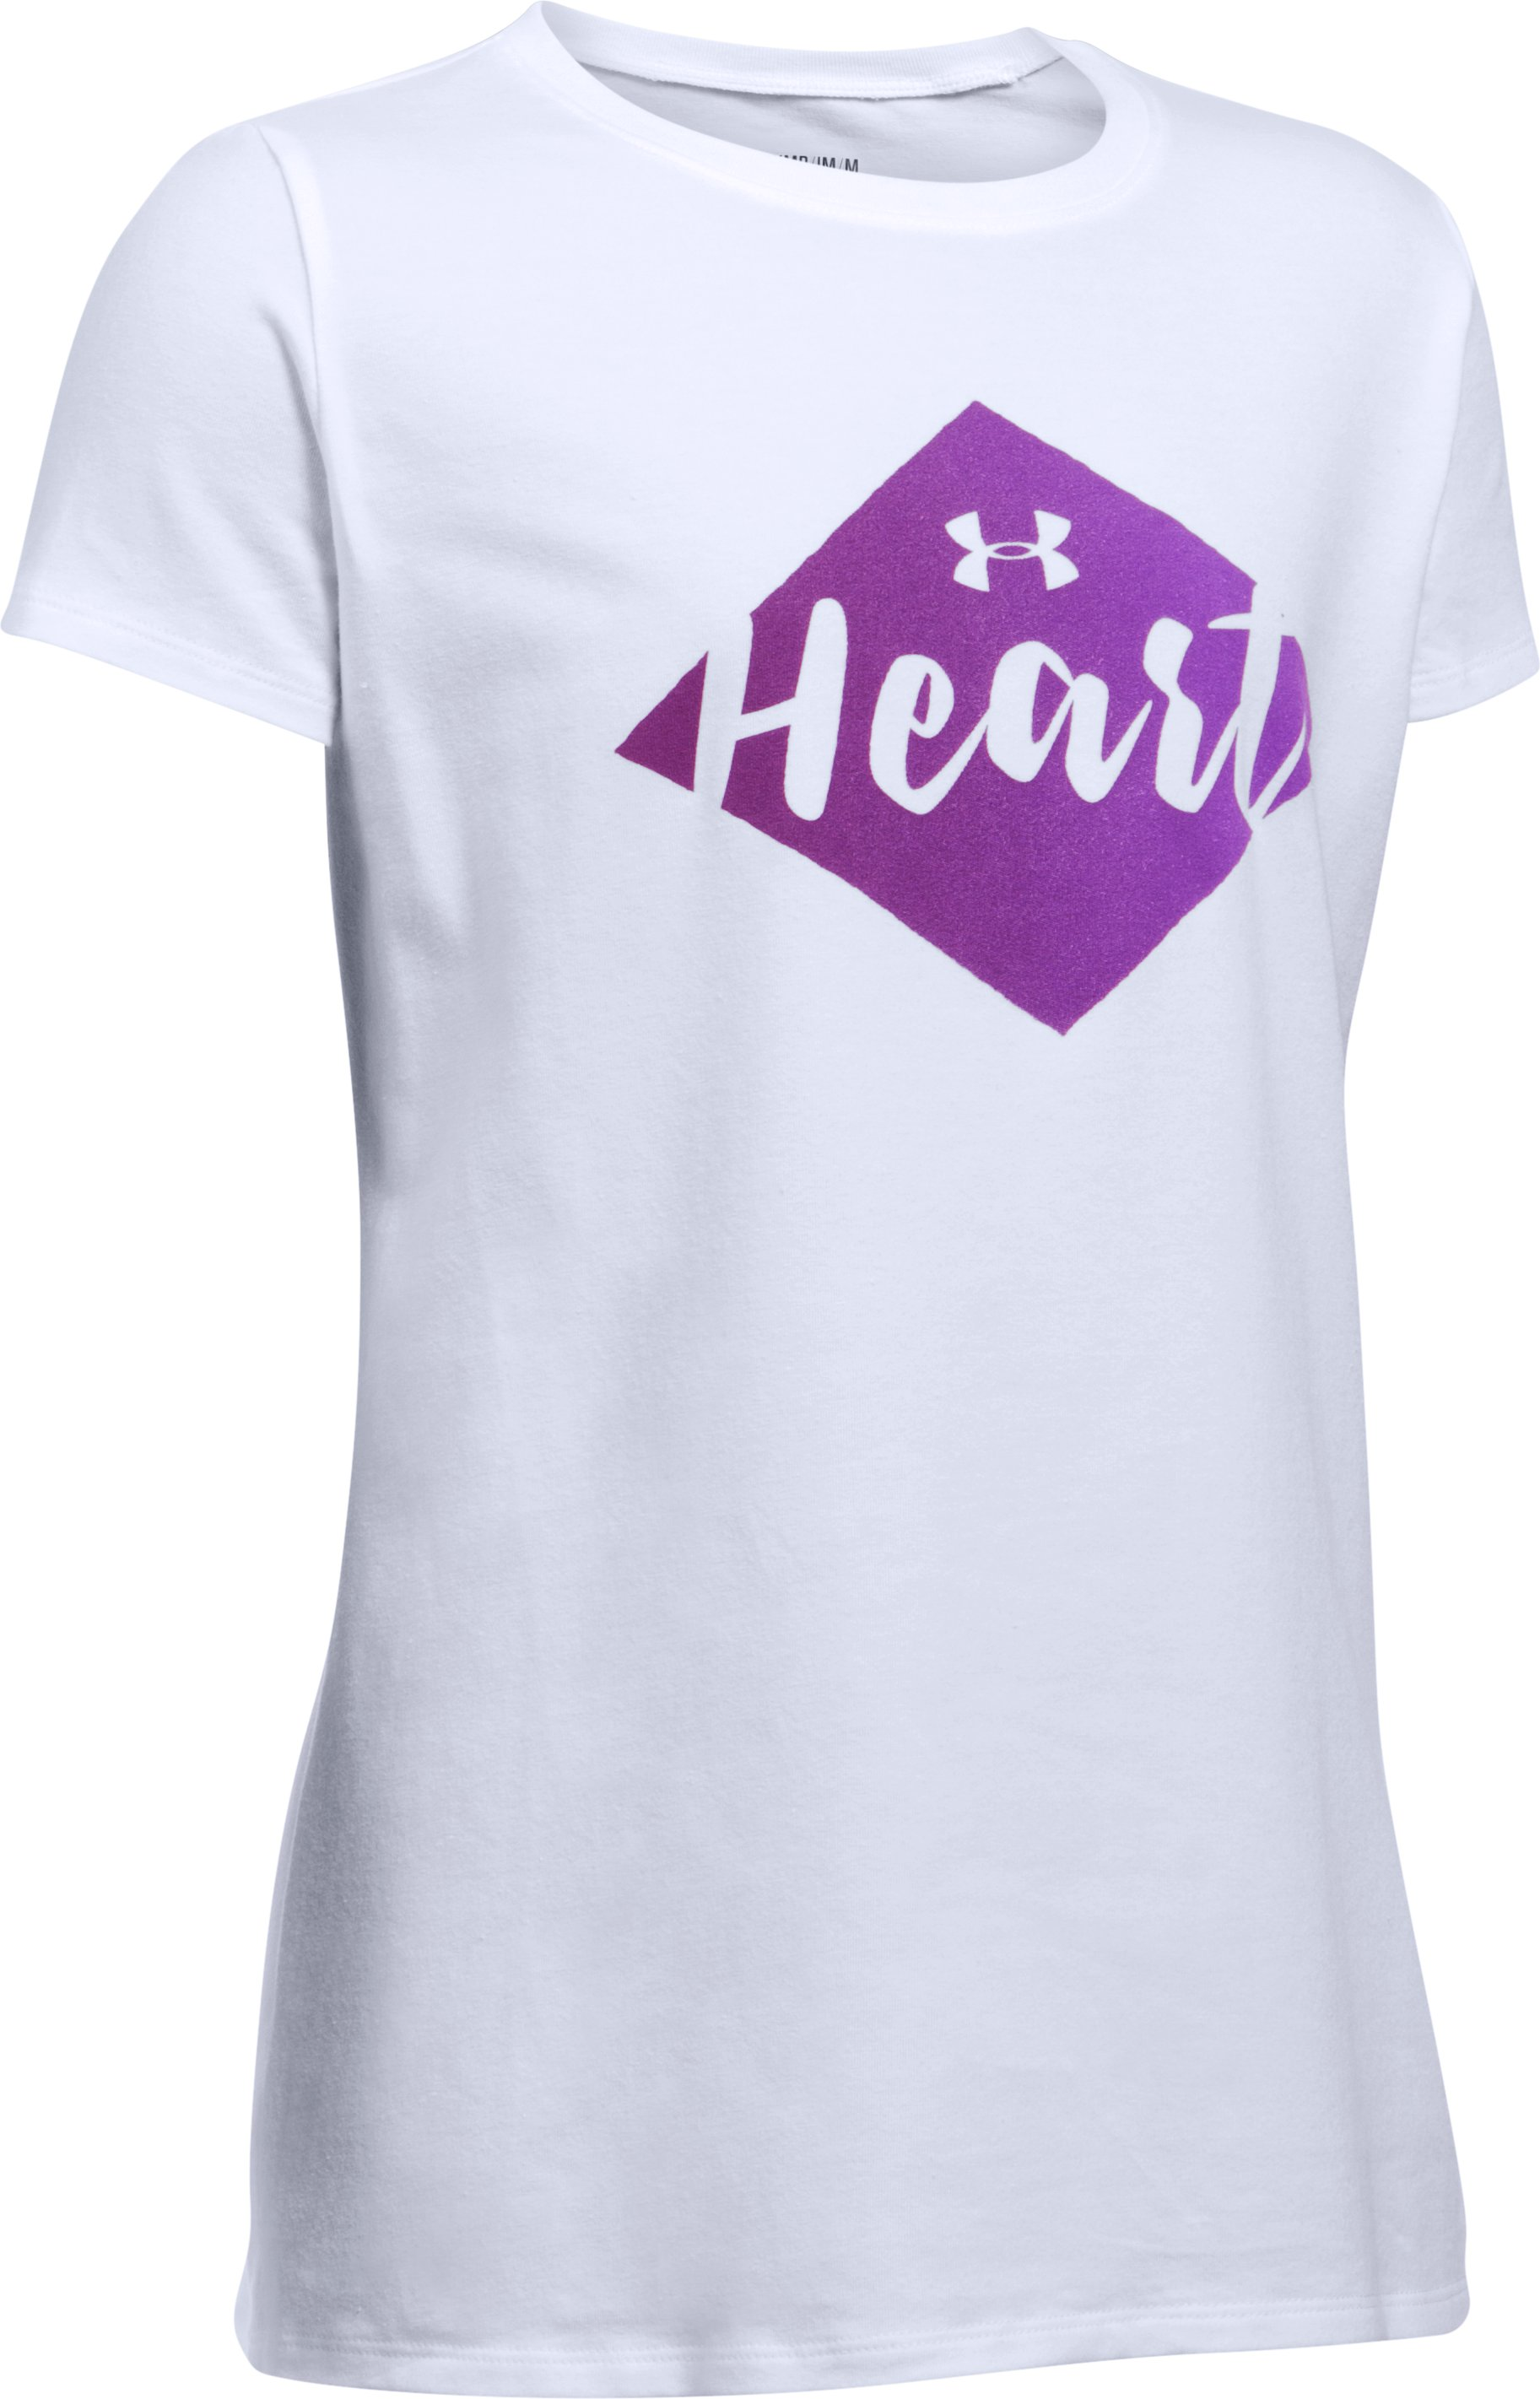 She Plays We Win UA Heart T-Shirt, White, undefined